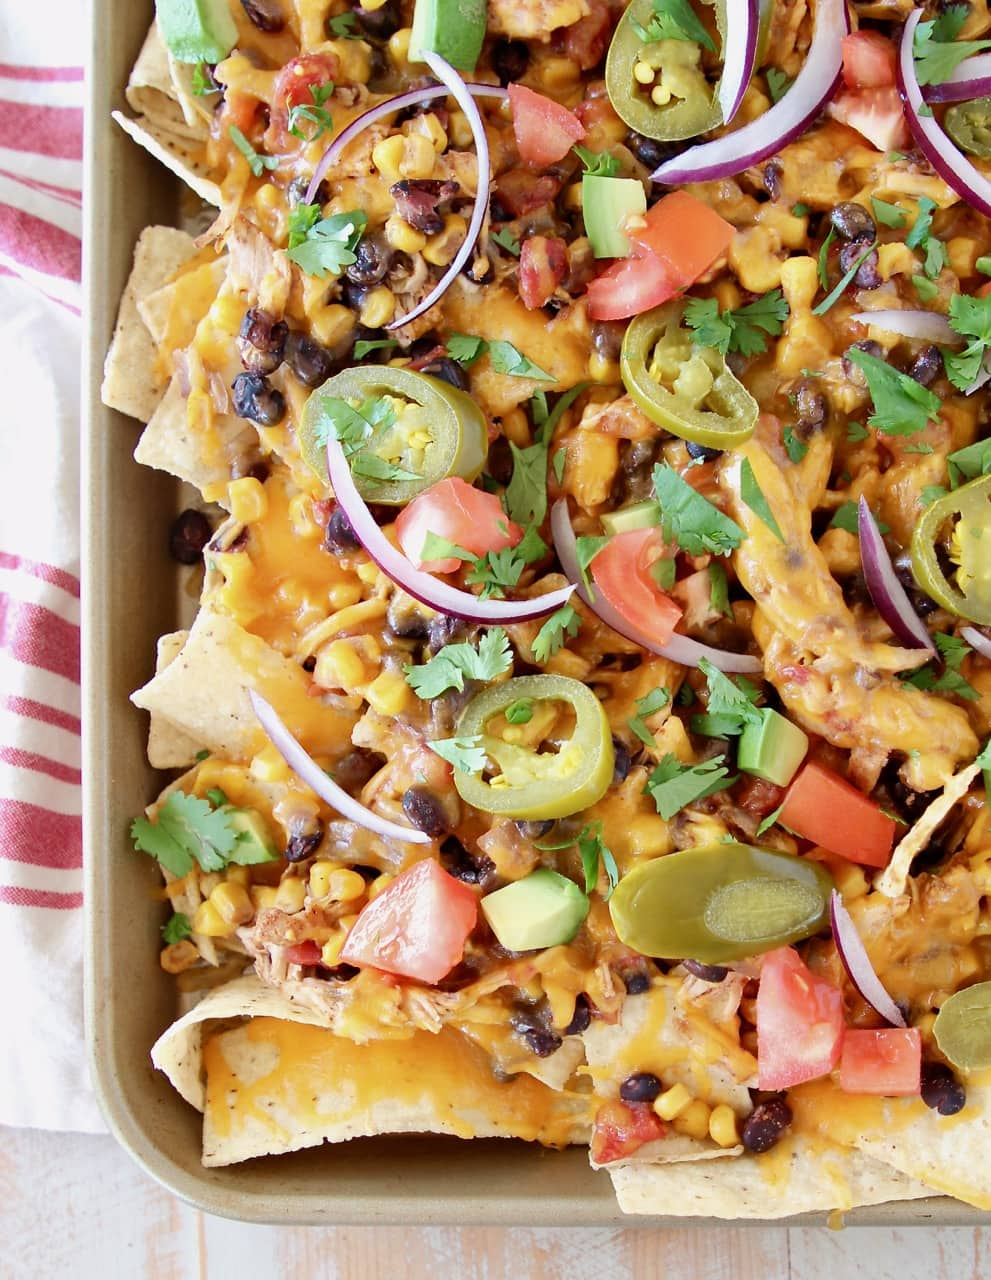 Chicken nachos on sheet pan with melted cheddar cheese, diced tomatoes, red onions and cilantro on red and white striped towel